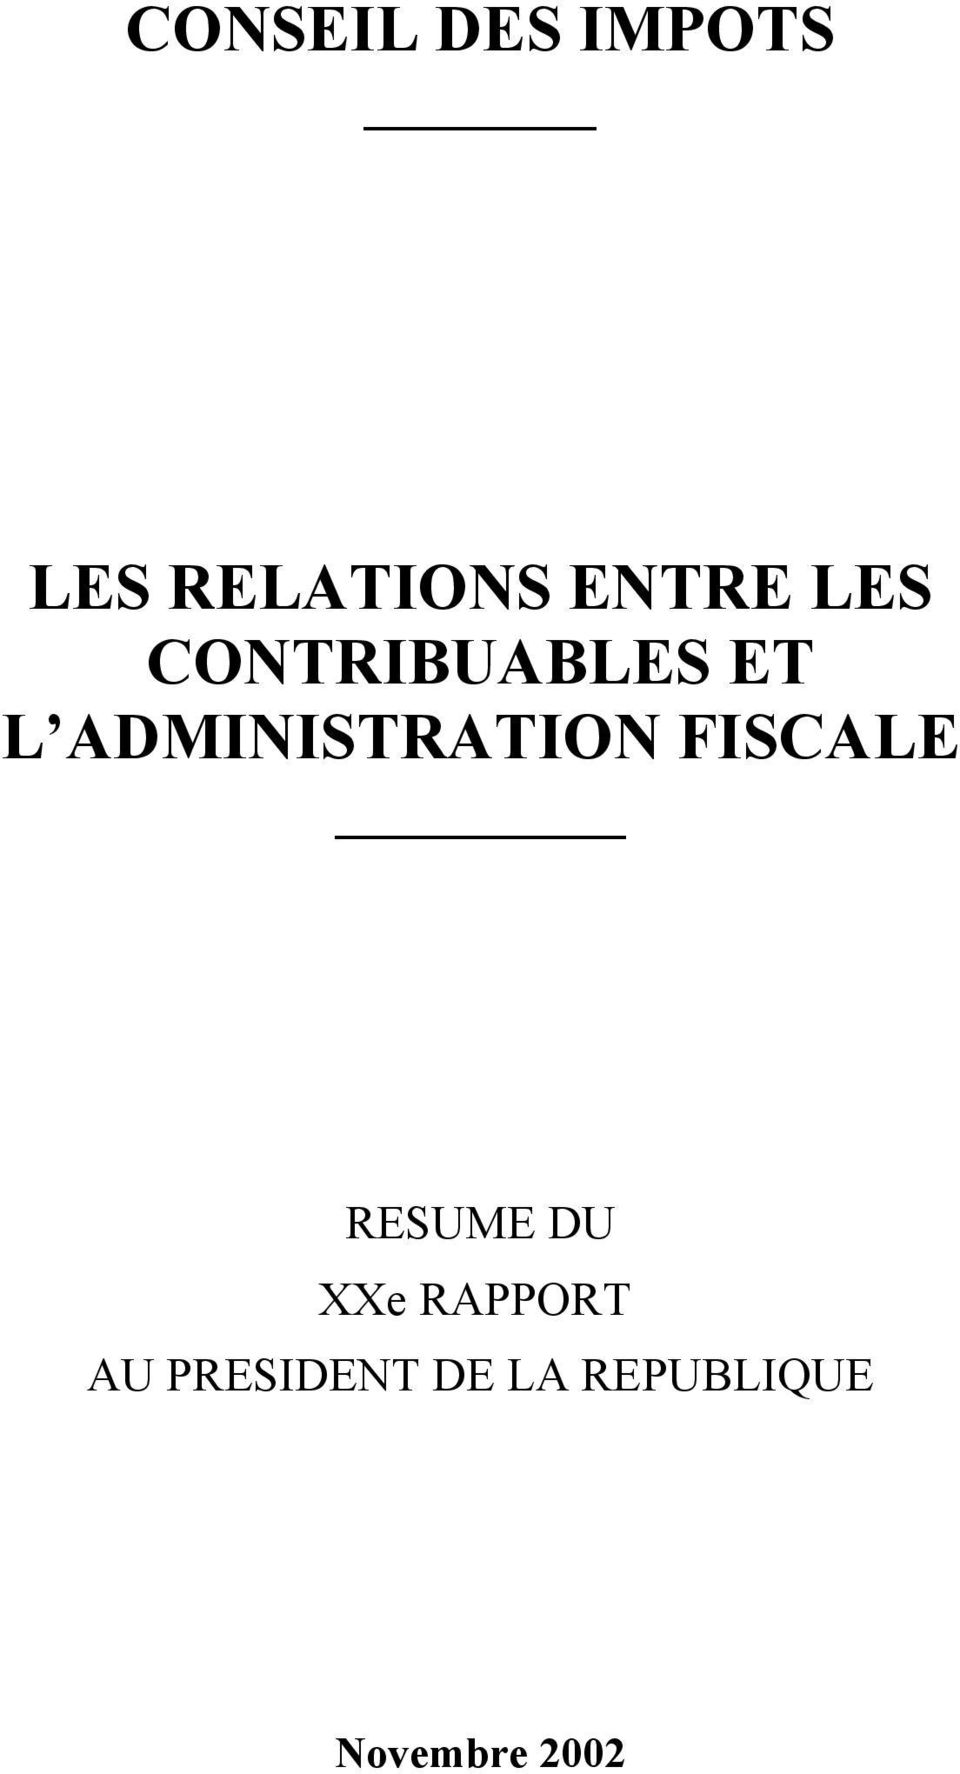 ADMINISTRATION FISCALE RESUME DU XXe